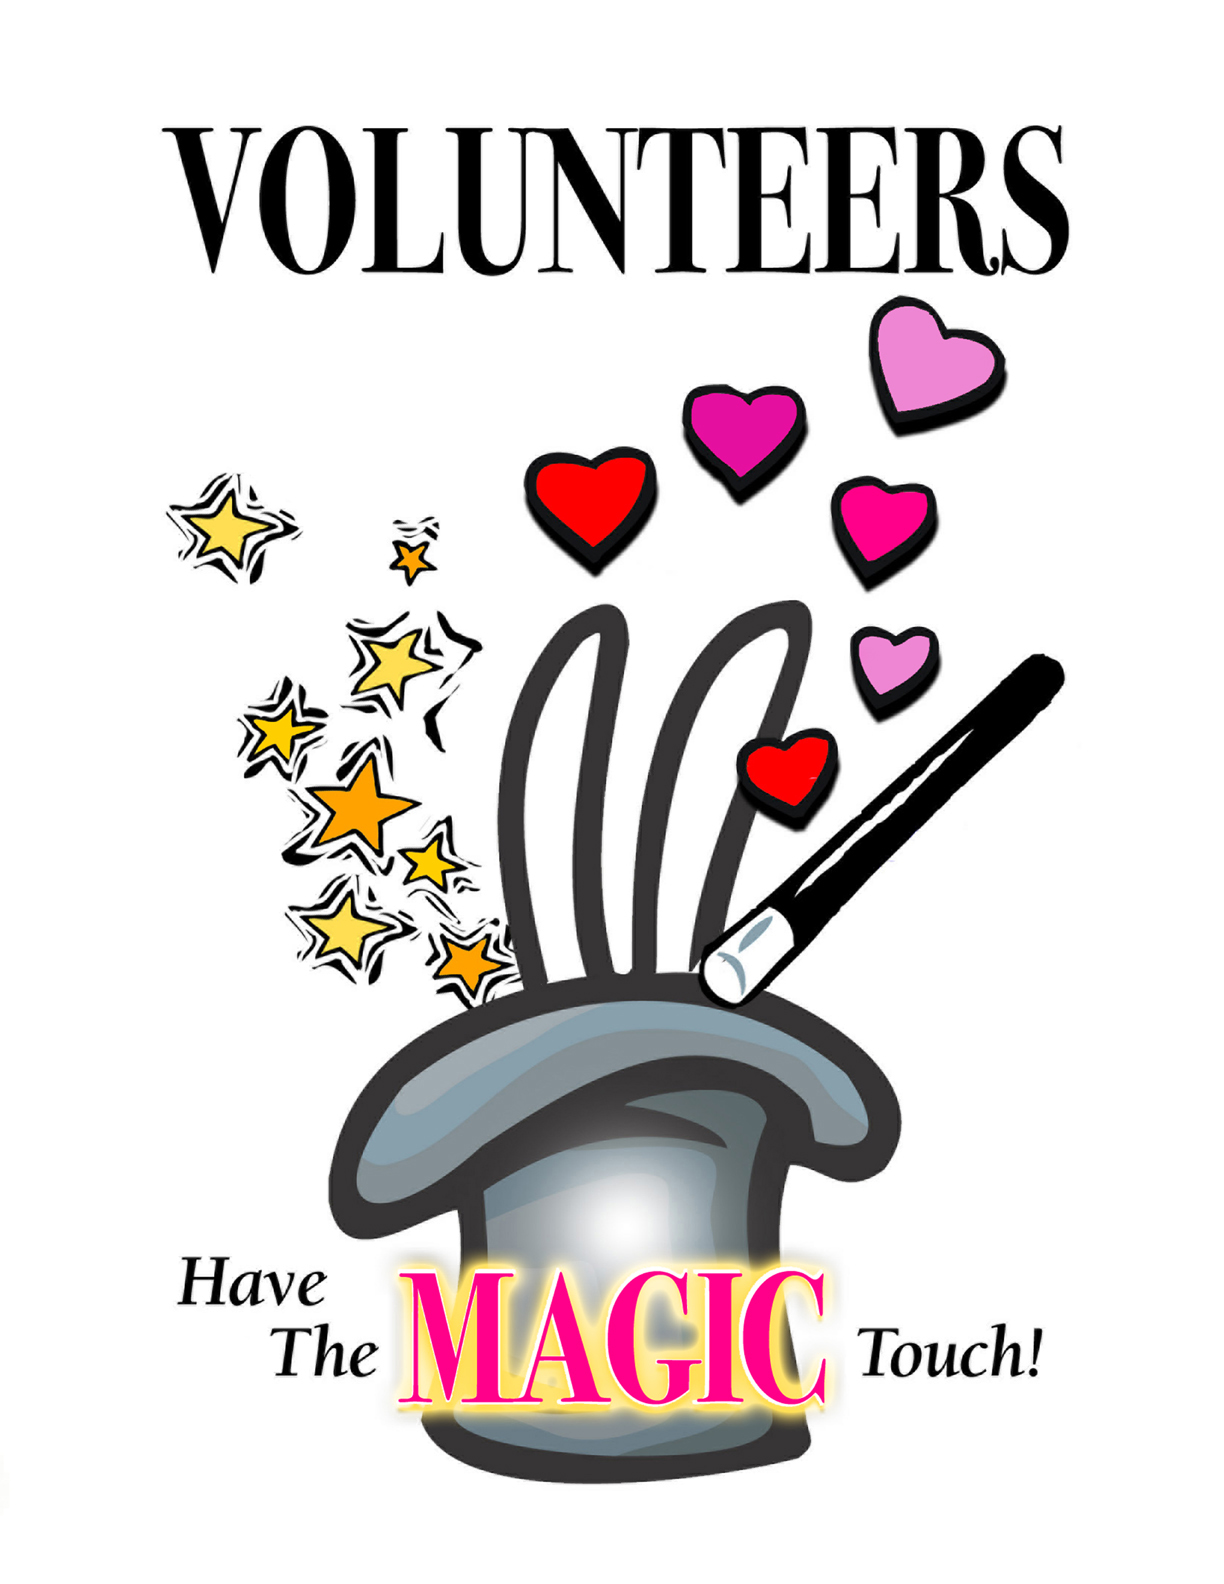 The Thanks Company | Greeting Cards and Gifts for Volunteers